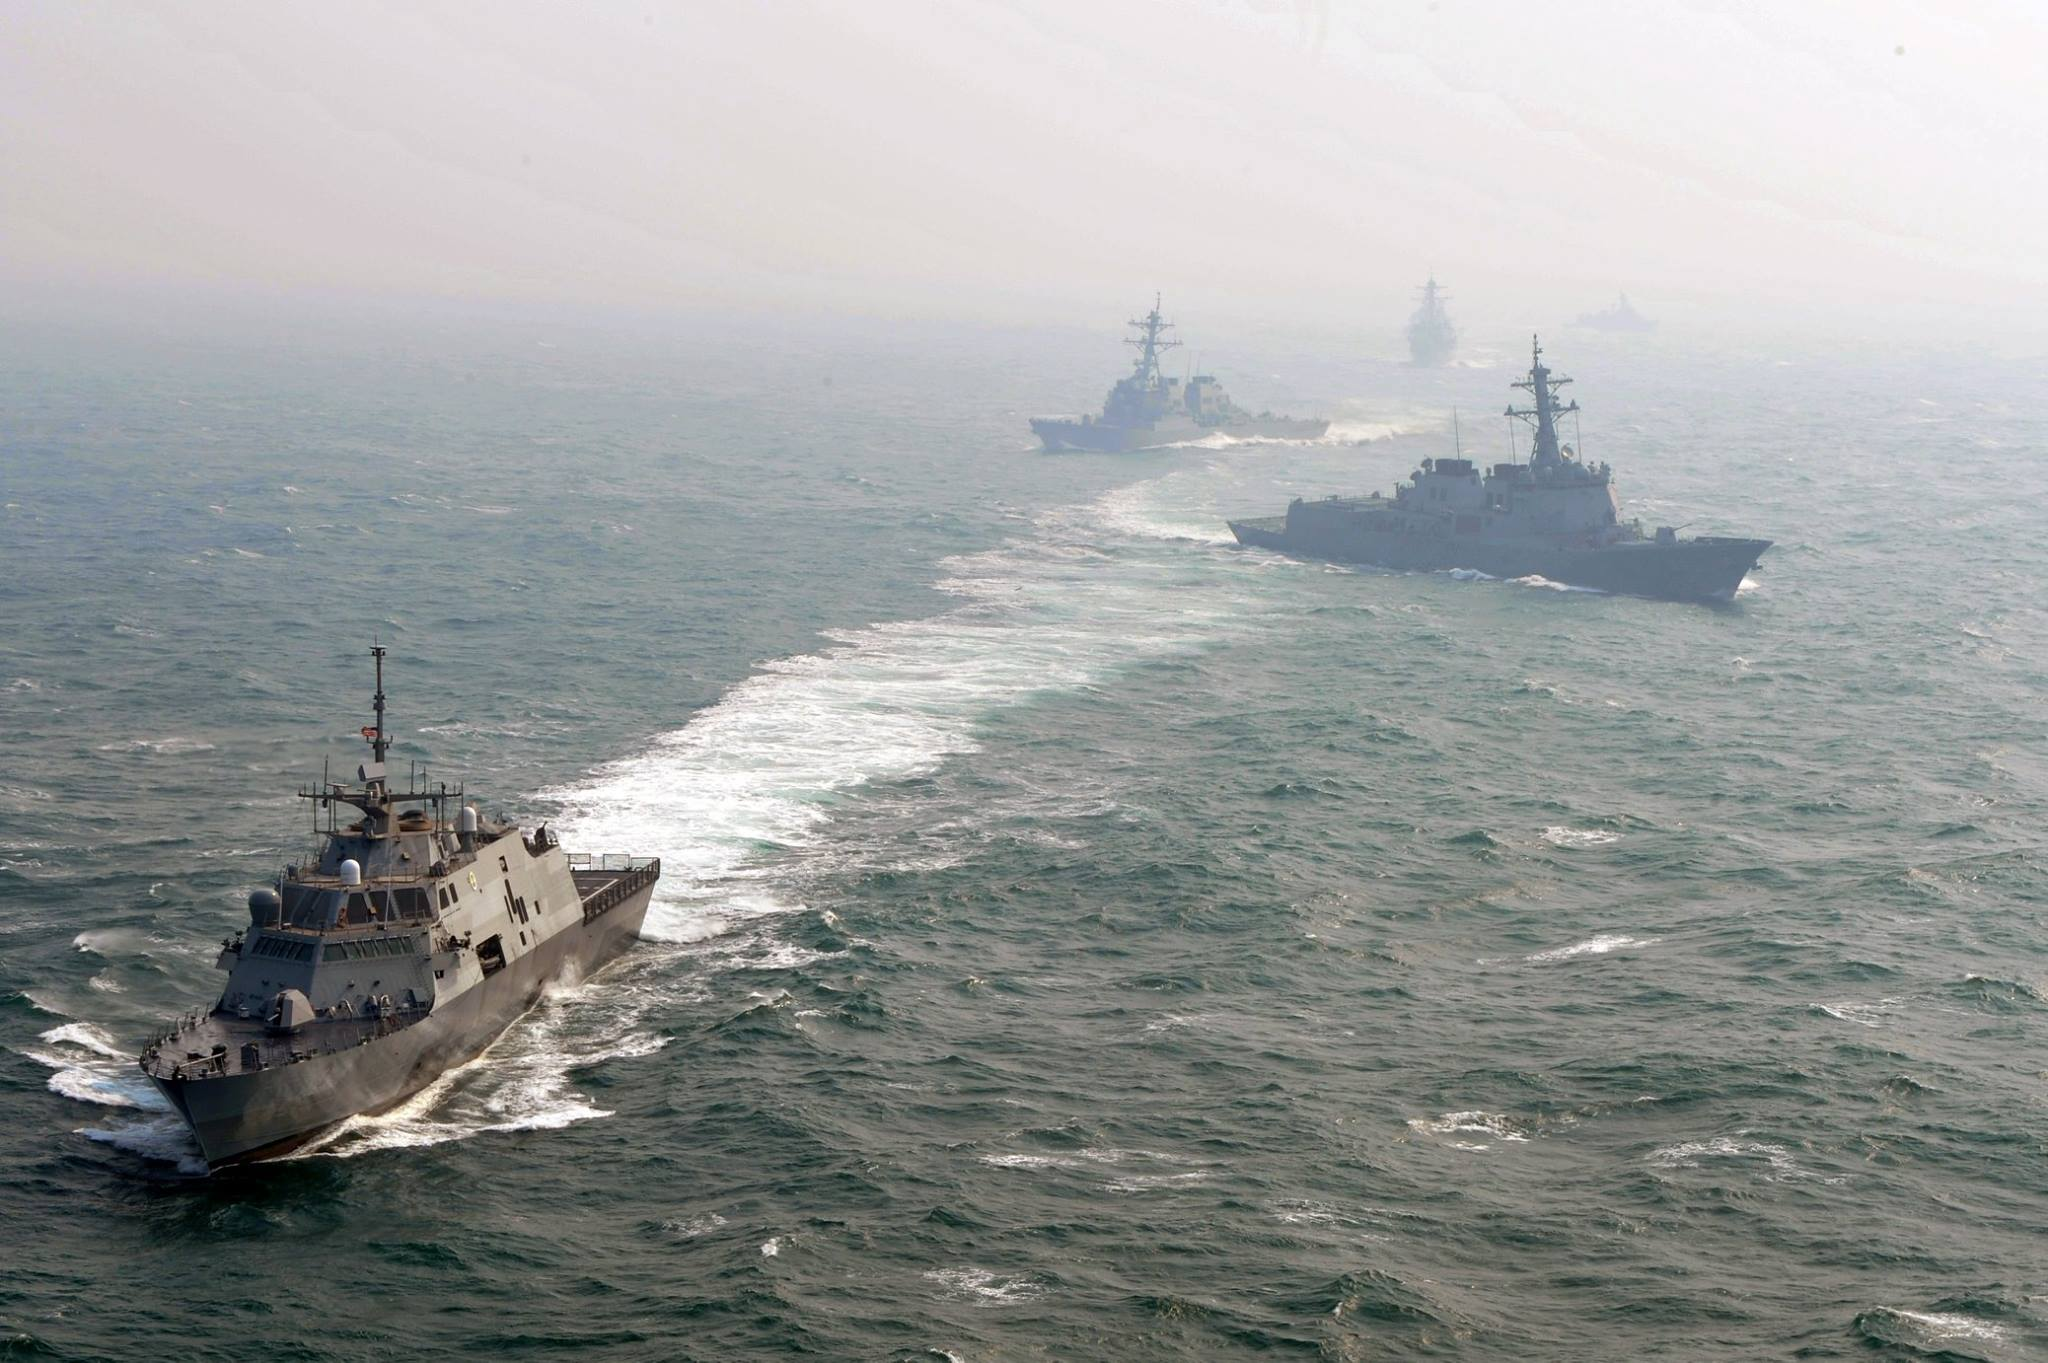 The littoral combat ship USS Fort Worth (LCS 3), front, the Arleigh Burke-class guided-missile destroyers USS Michael Murphy (DDG 112) and USS John S. McCain (DDG 56), the Republic of Korea navy destroyer ROKS Eulji Mundeok (DDH 972), and the Ulsan-class frigate ROKS Jeju (FF 958) participate in a joint photo exercise during Foal Eagle 2015. Both the DDGs and LCSs are under construction now but will need replacement programs beginning in the mid-2030s. US Navy photo.